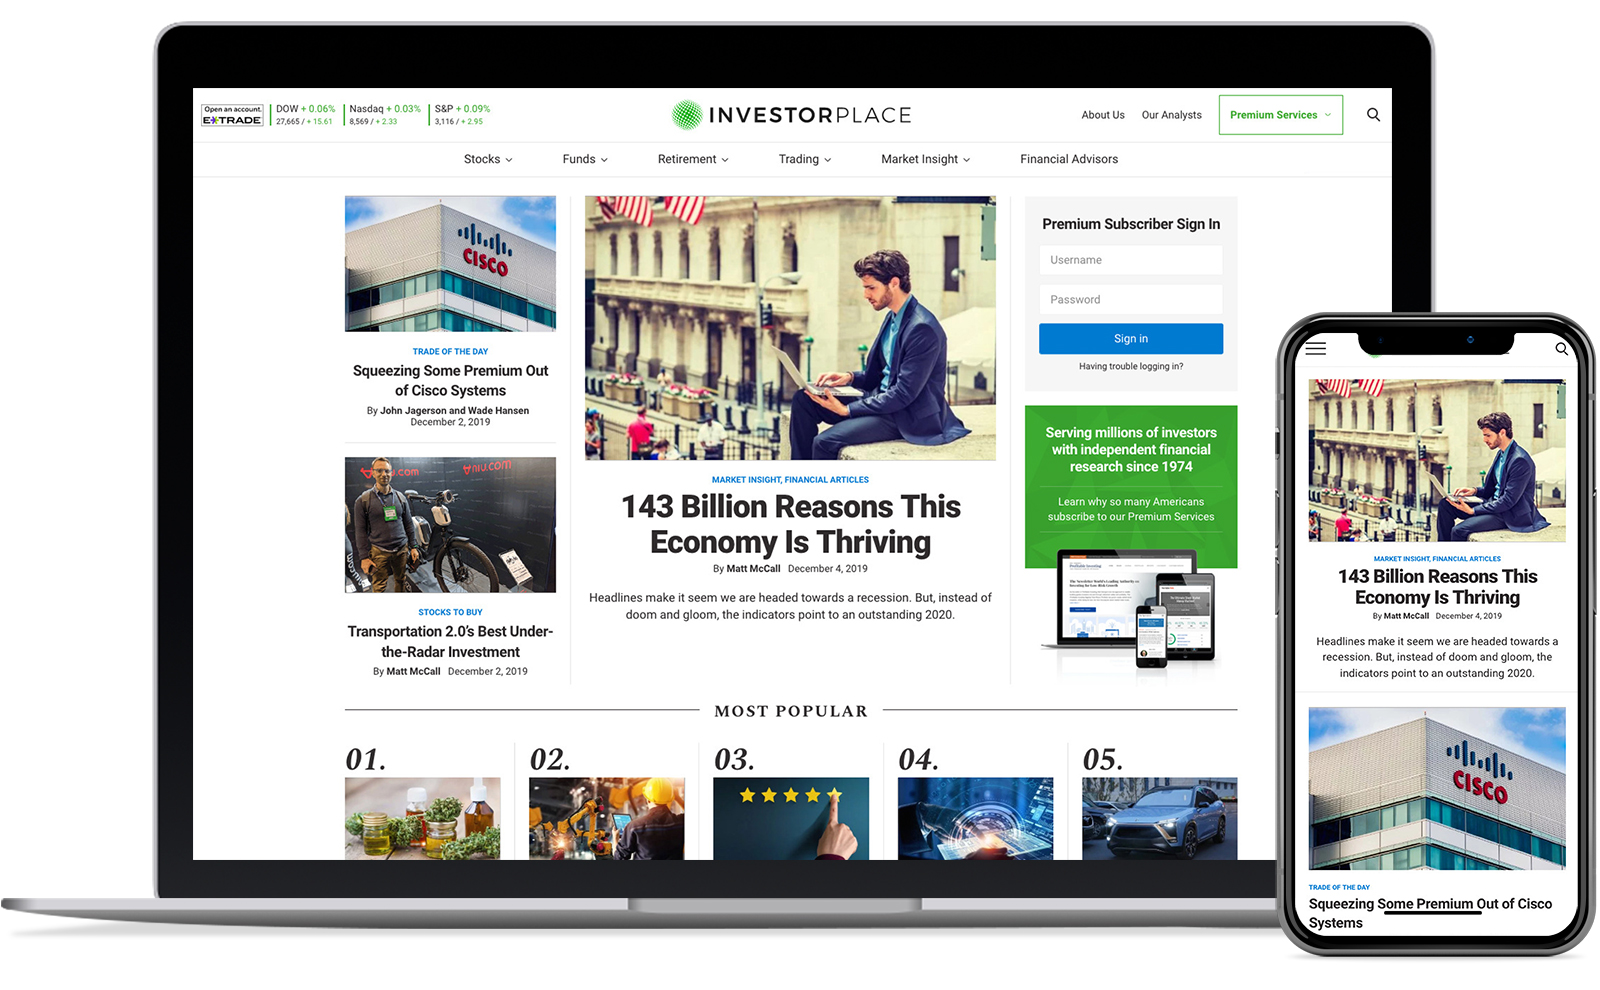 InvestorPlace Website Redesign